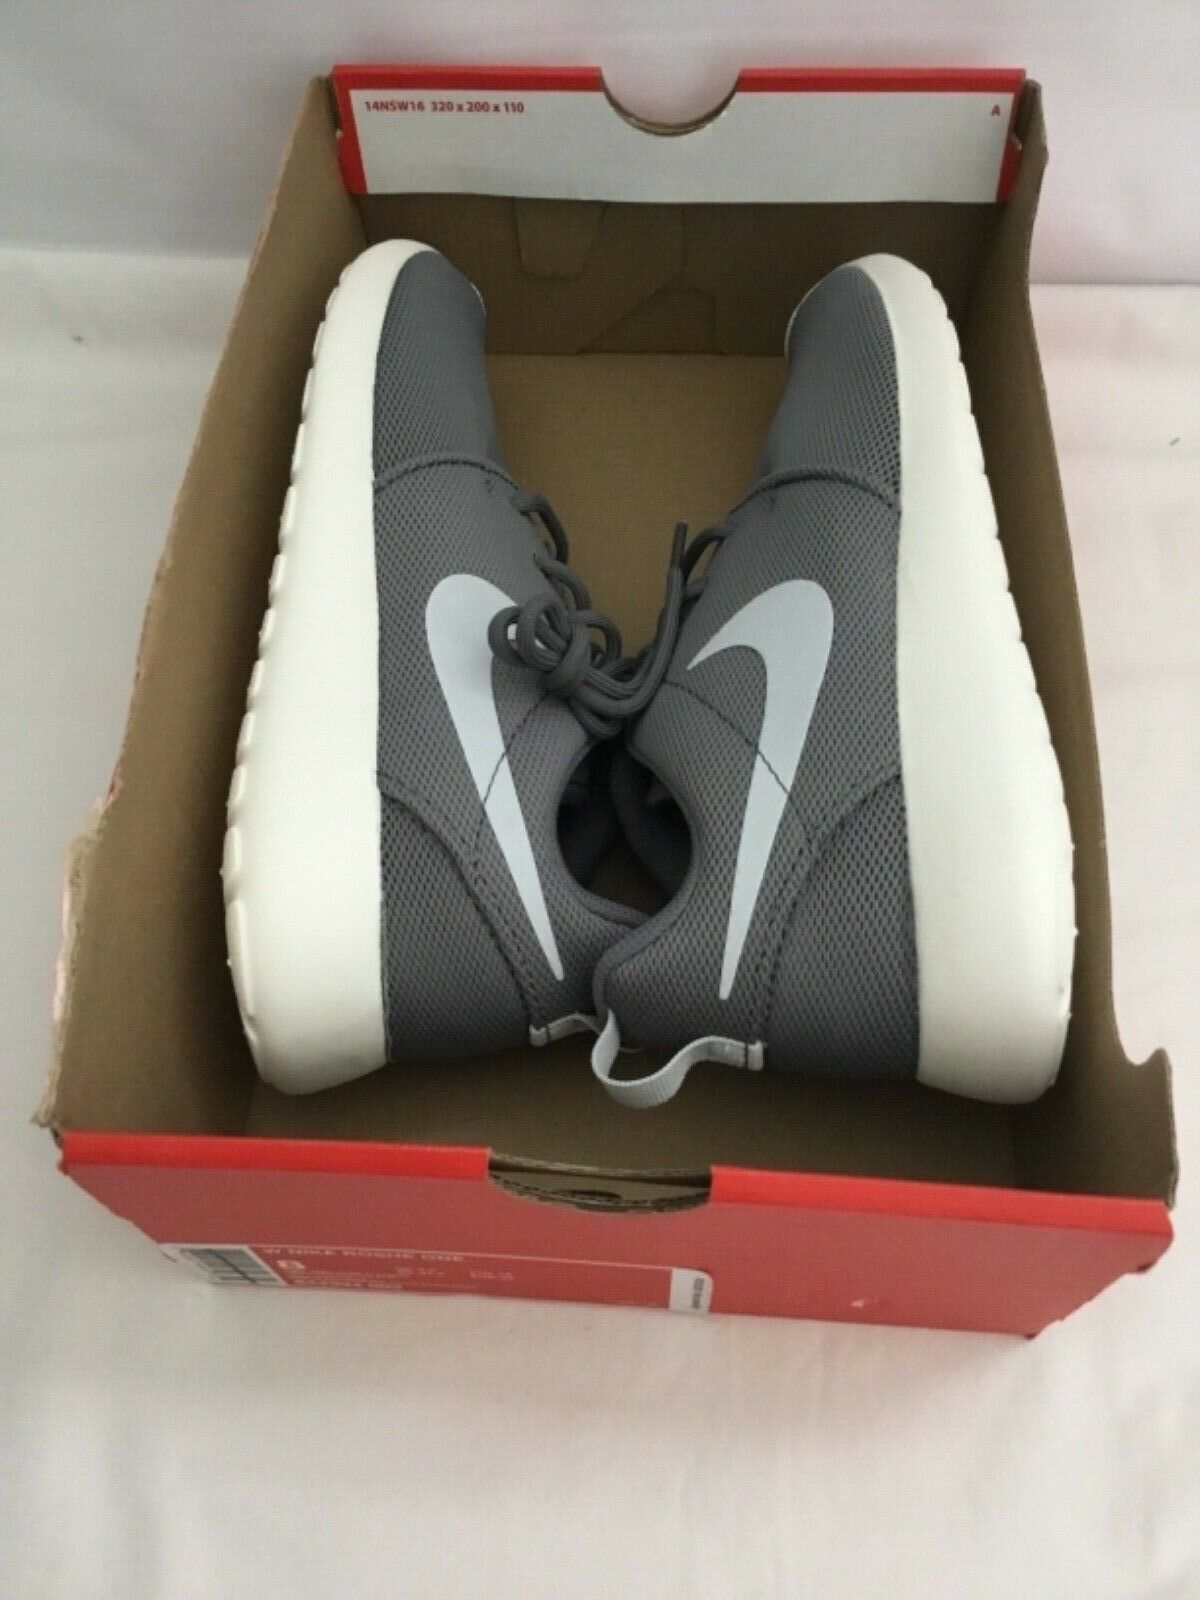 WMNS Nike Roshe One Cool Grey Athletic Sneaker Style #844994 003 SZ 8(NO TOP LID